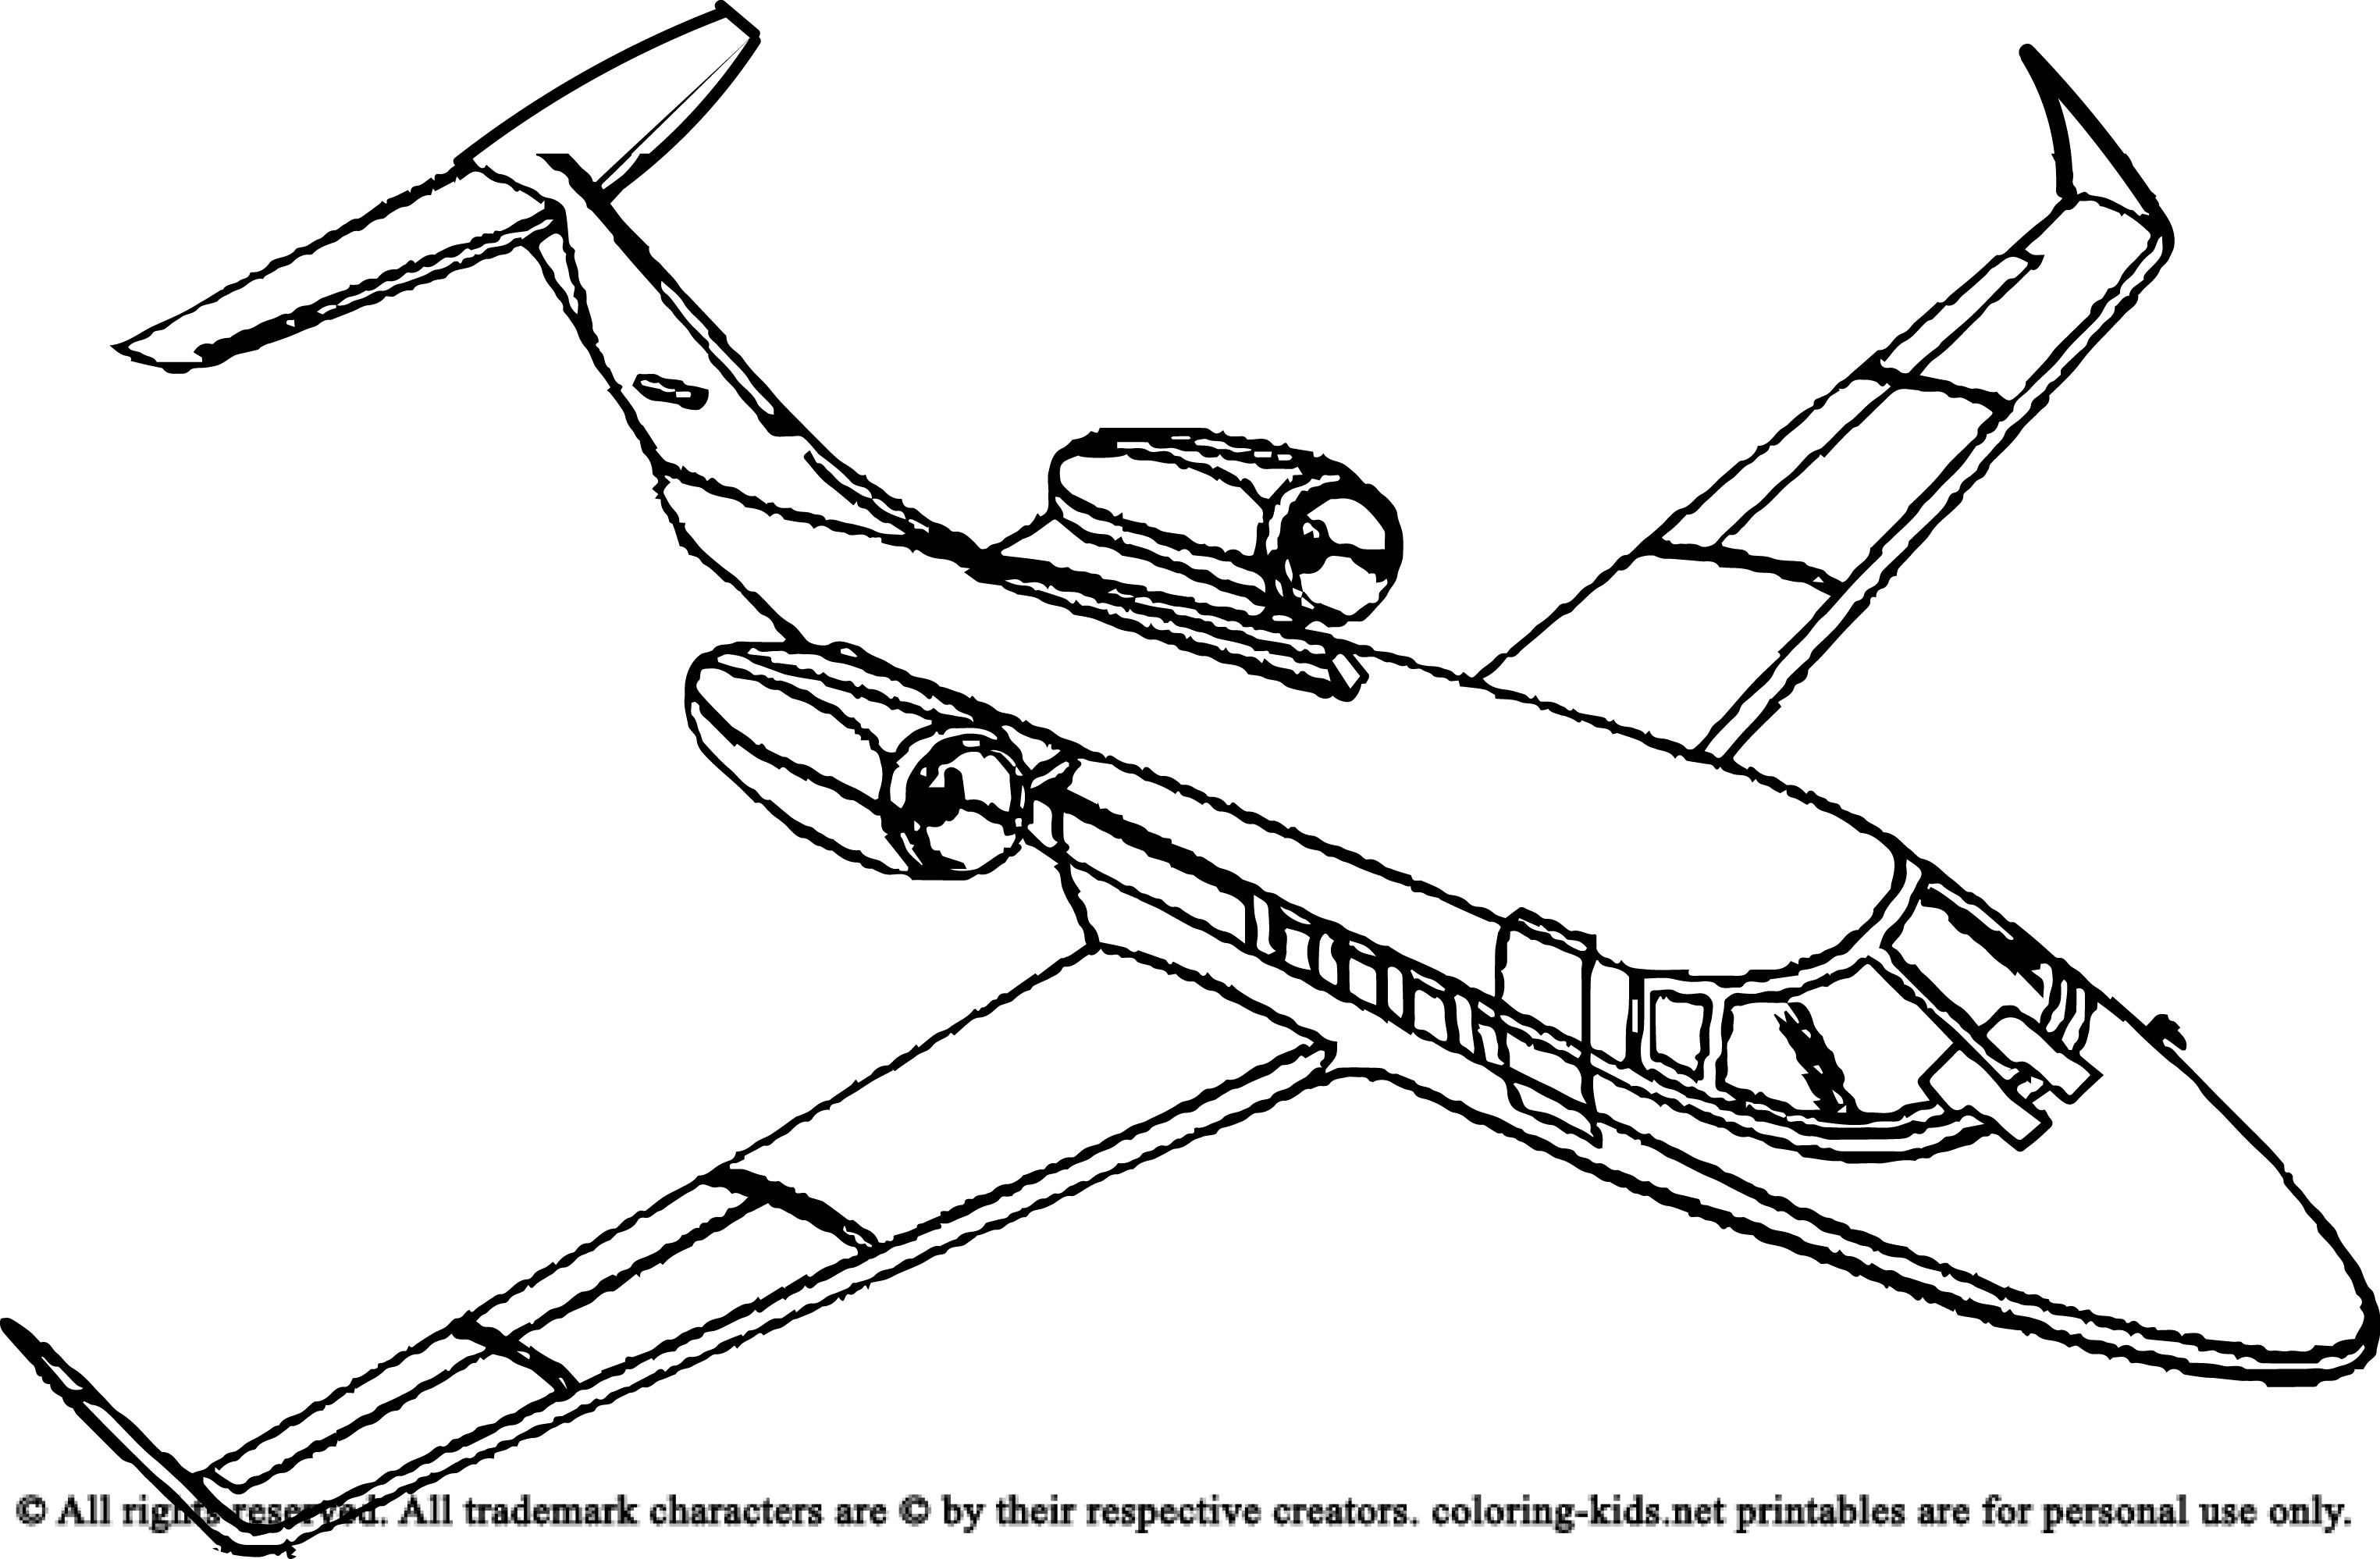 airplane and helicopter coloring pages helicopter coloring pages print at getdrawings free download pages coloring airplane and helicopter